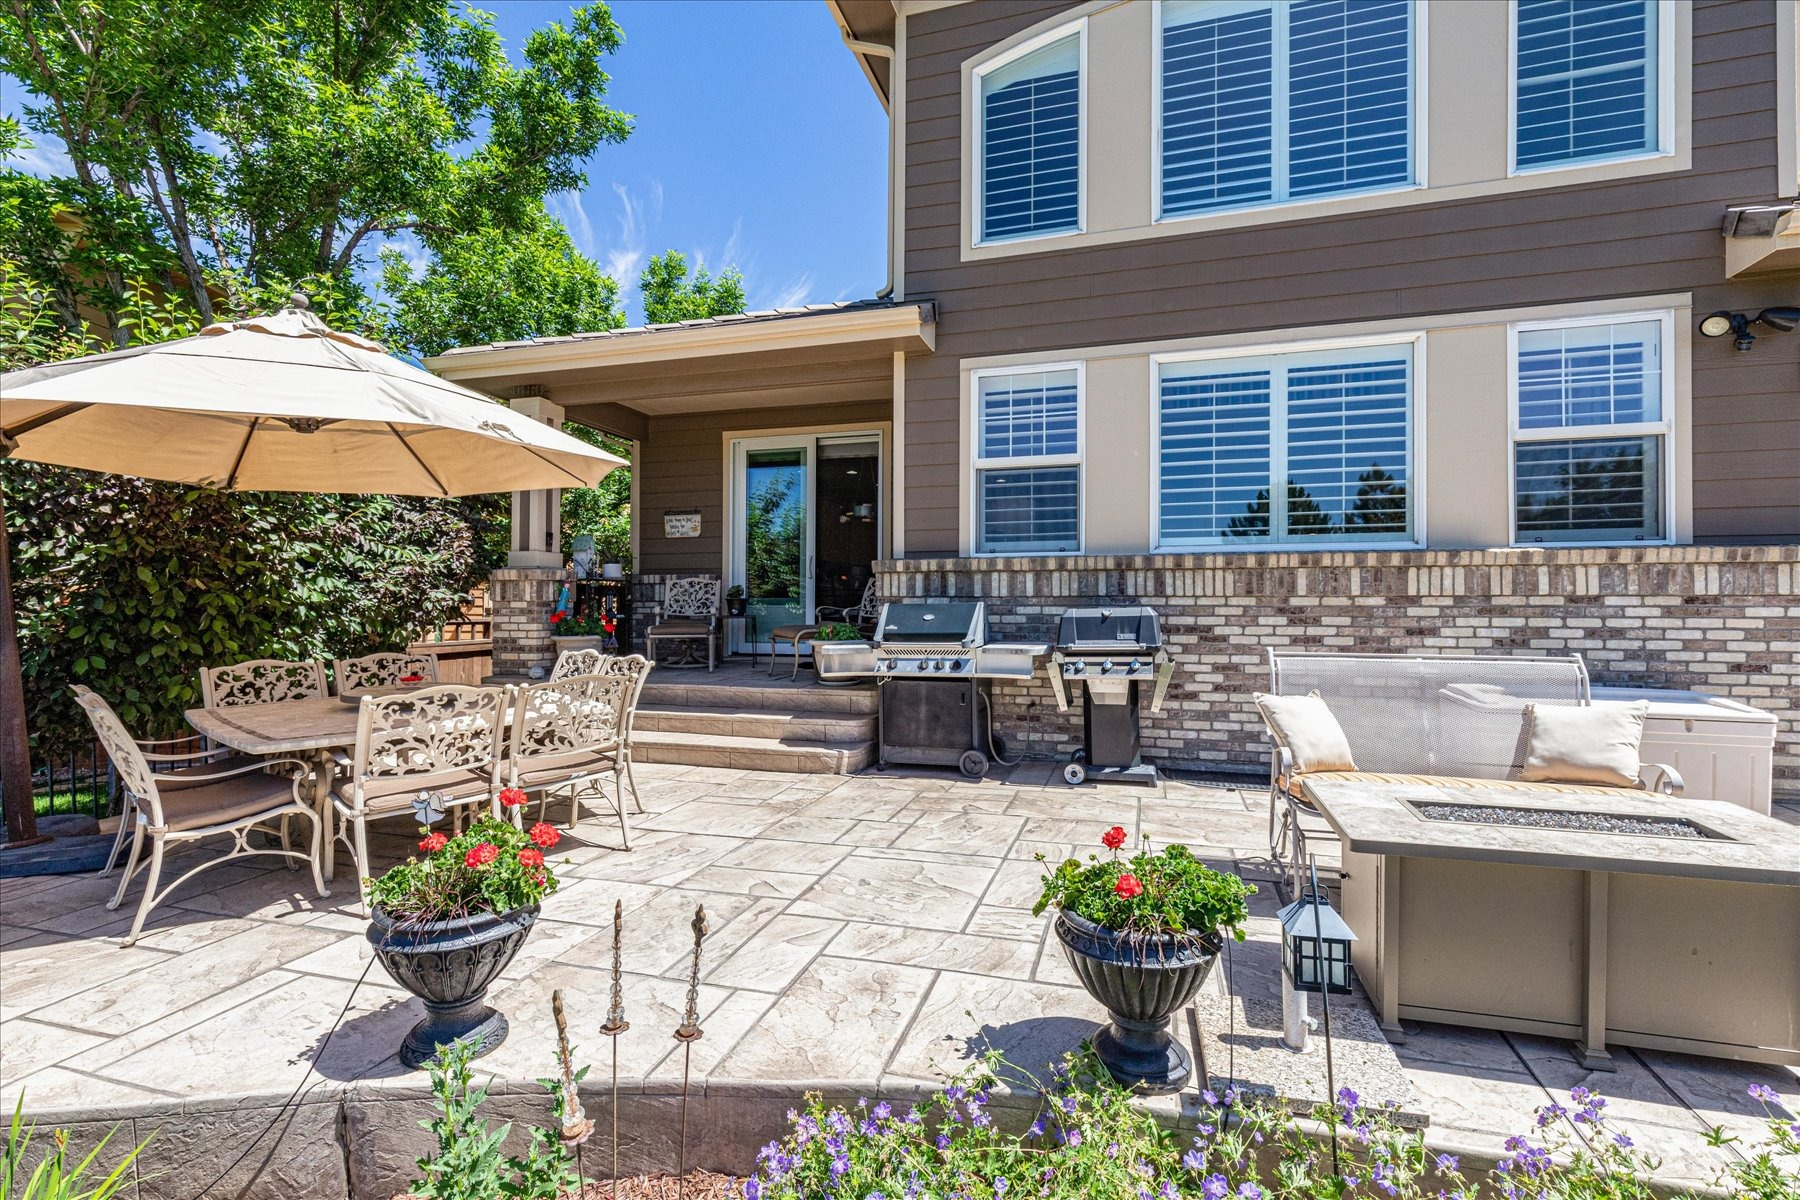 Expanded Stamped Patio for Great Entertaining Area